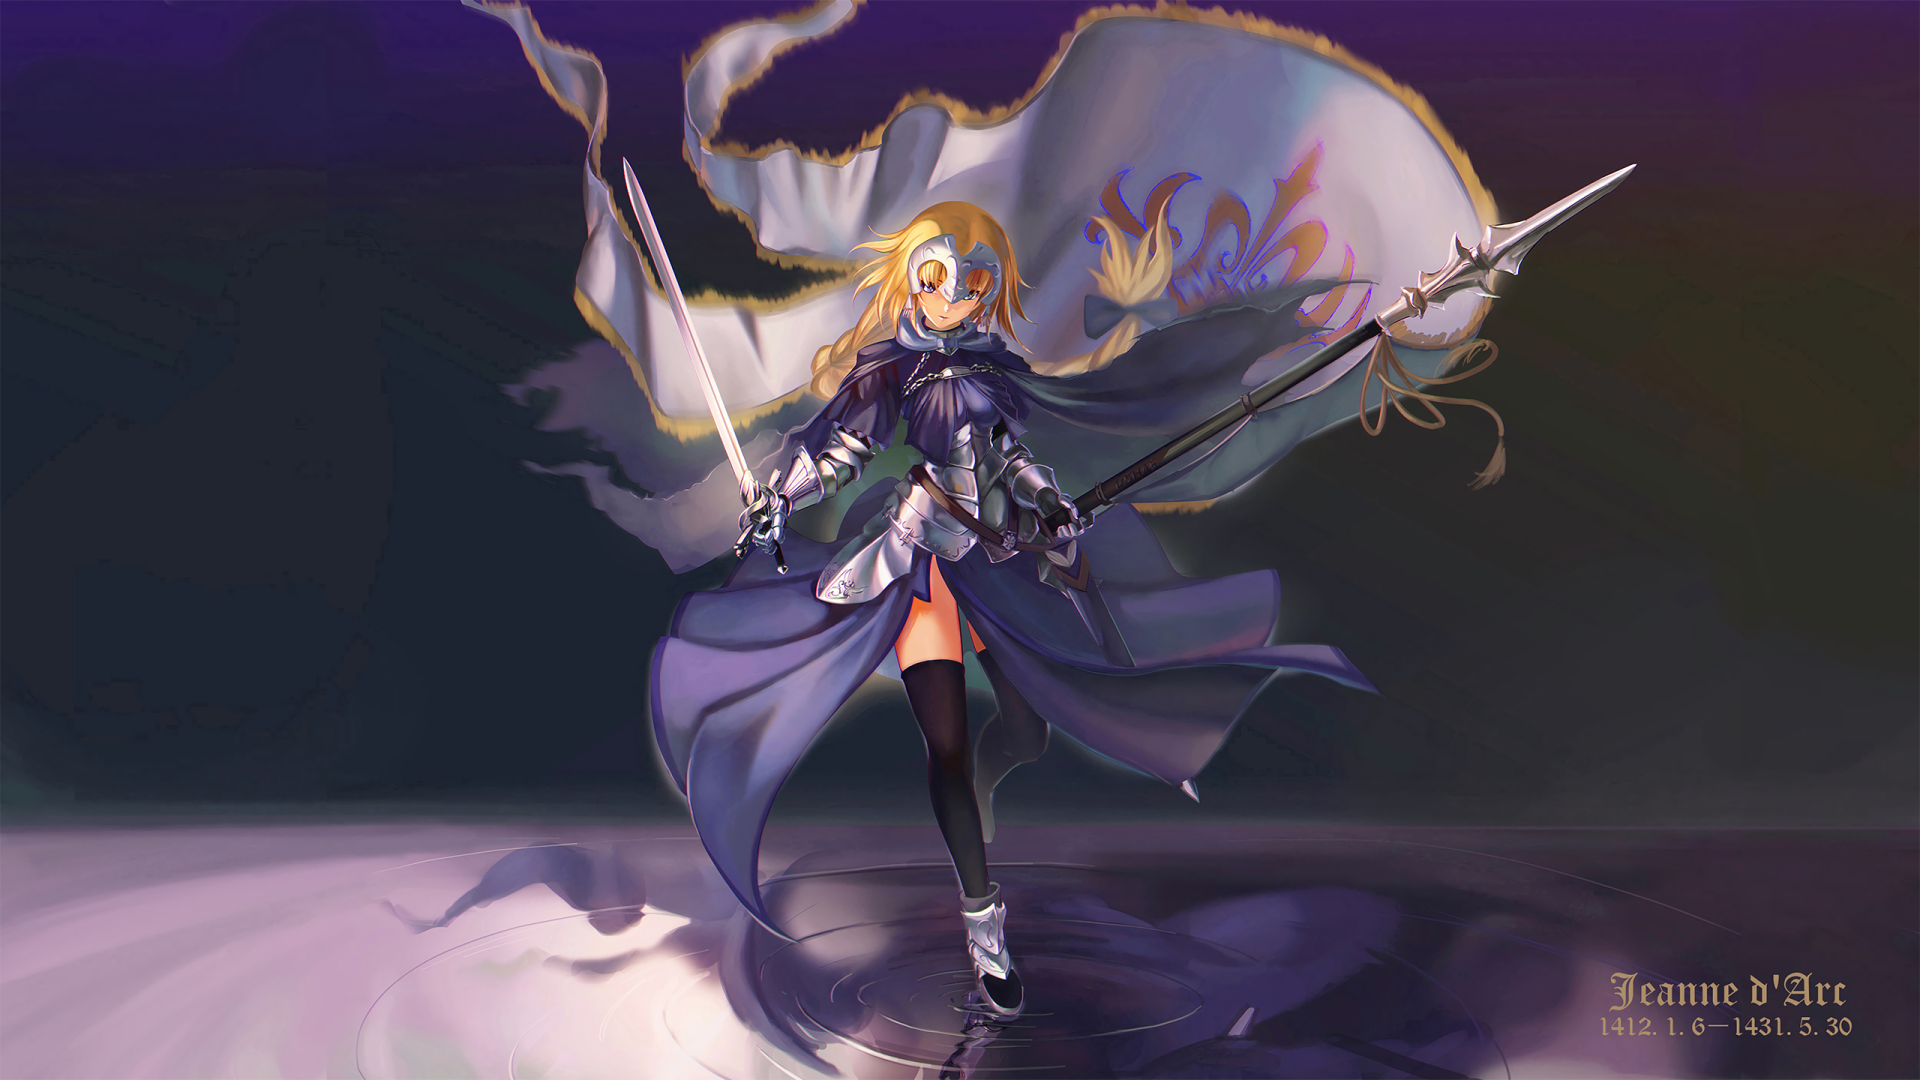 Title Ruler Anime Fate Grand Order Fate Series Fate Apocrypha Jeanne Spear 19x1080 Download Hd Wallpaper Wallpapertip